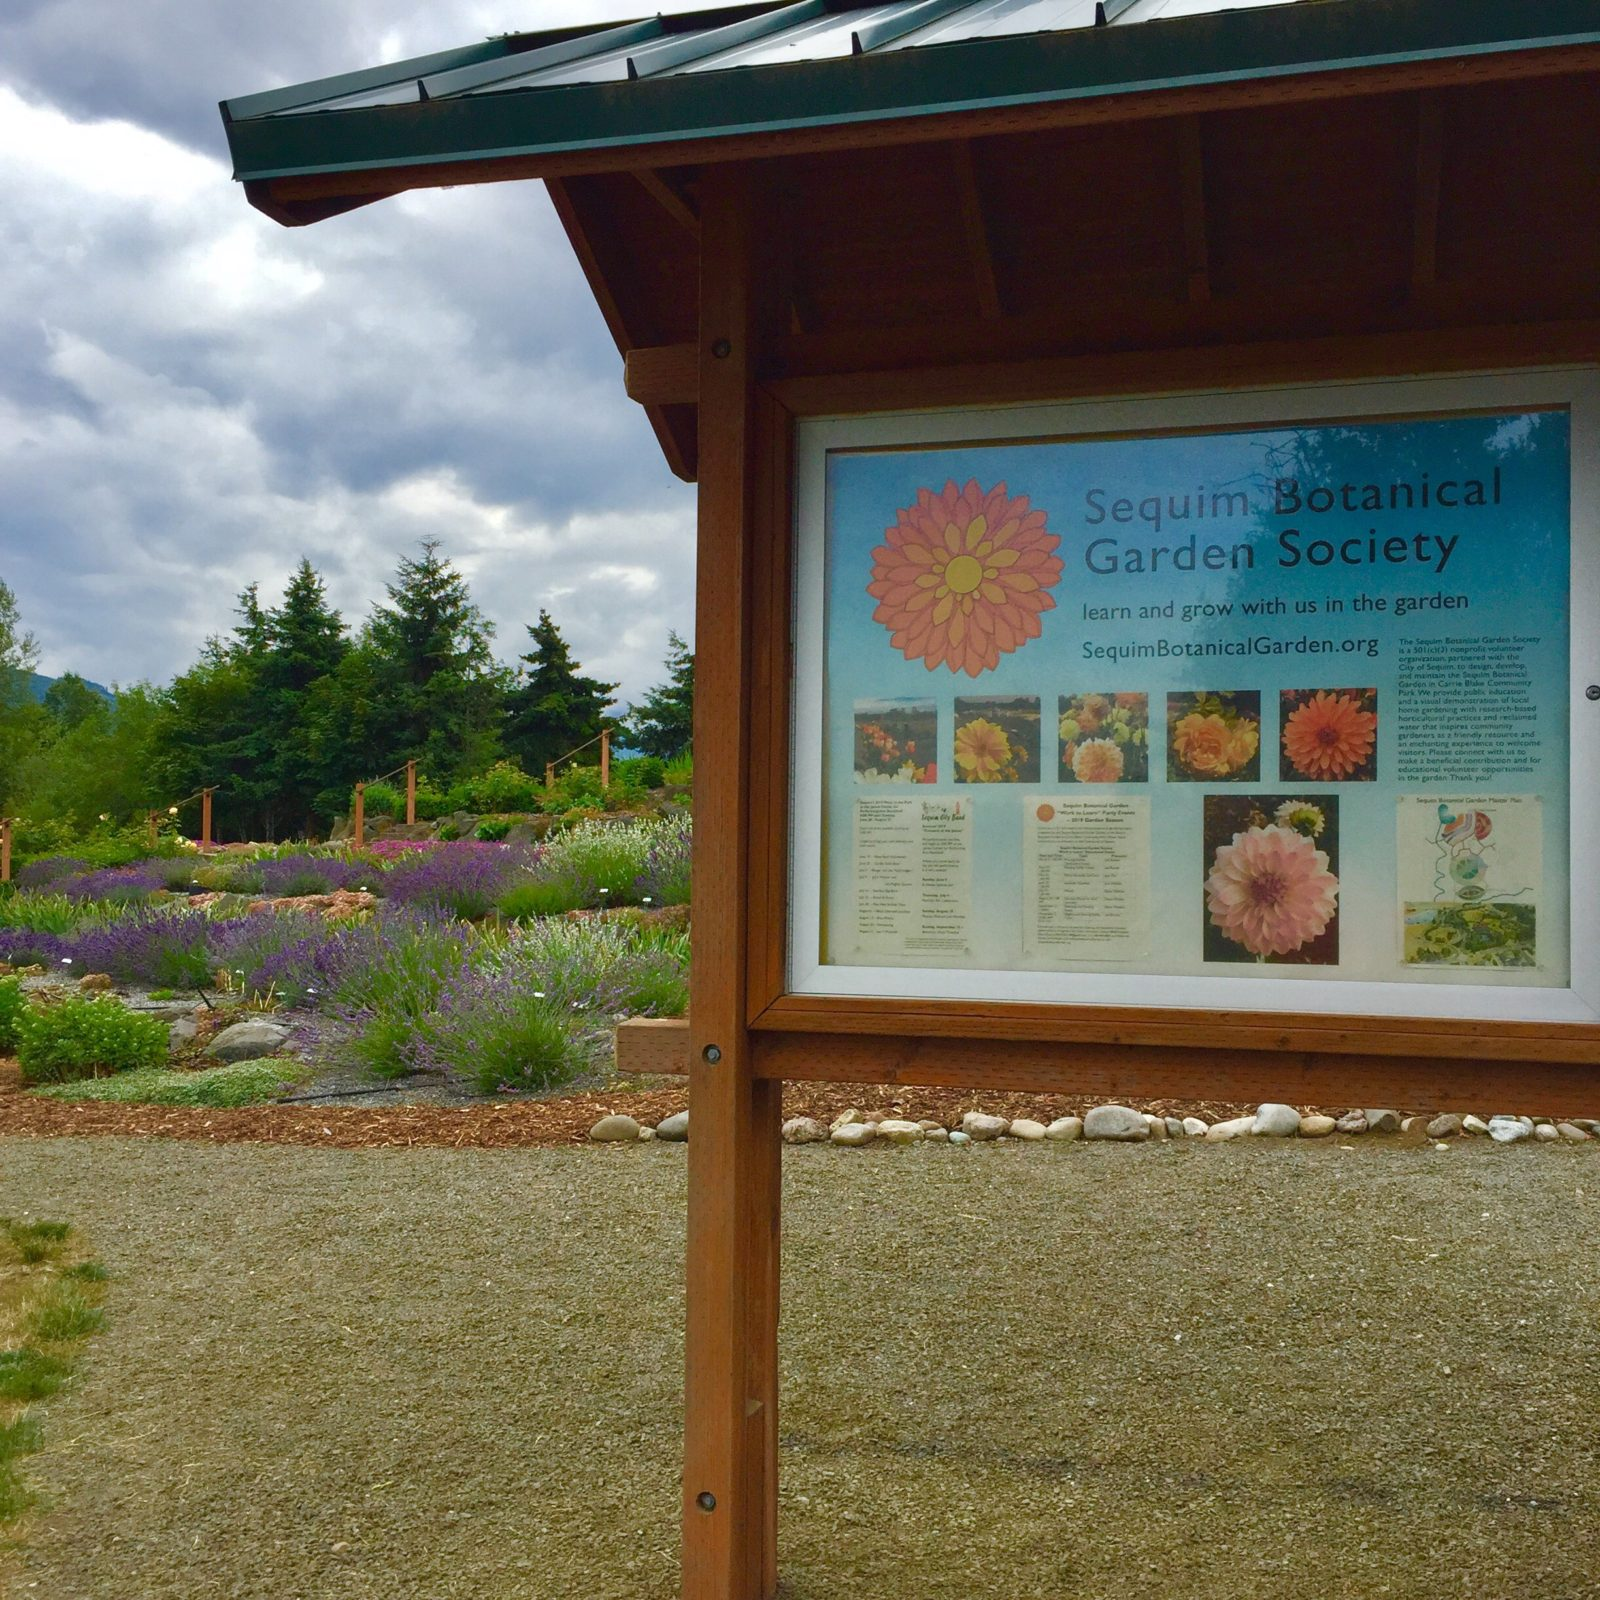 Kiosk at the Sequim Botanical Terrace Garden